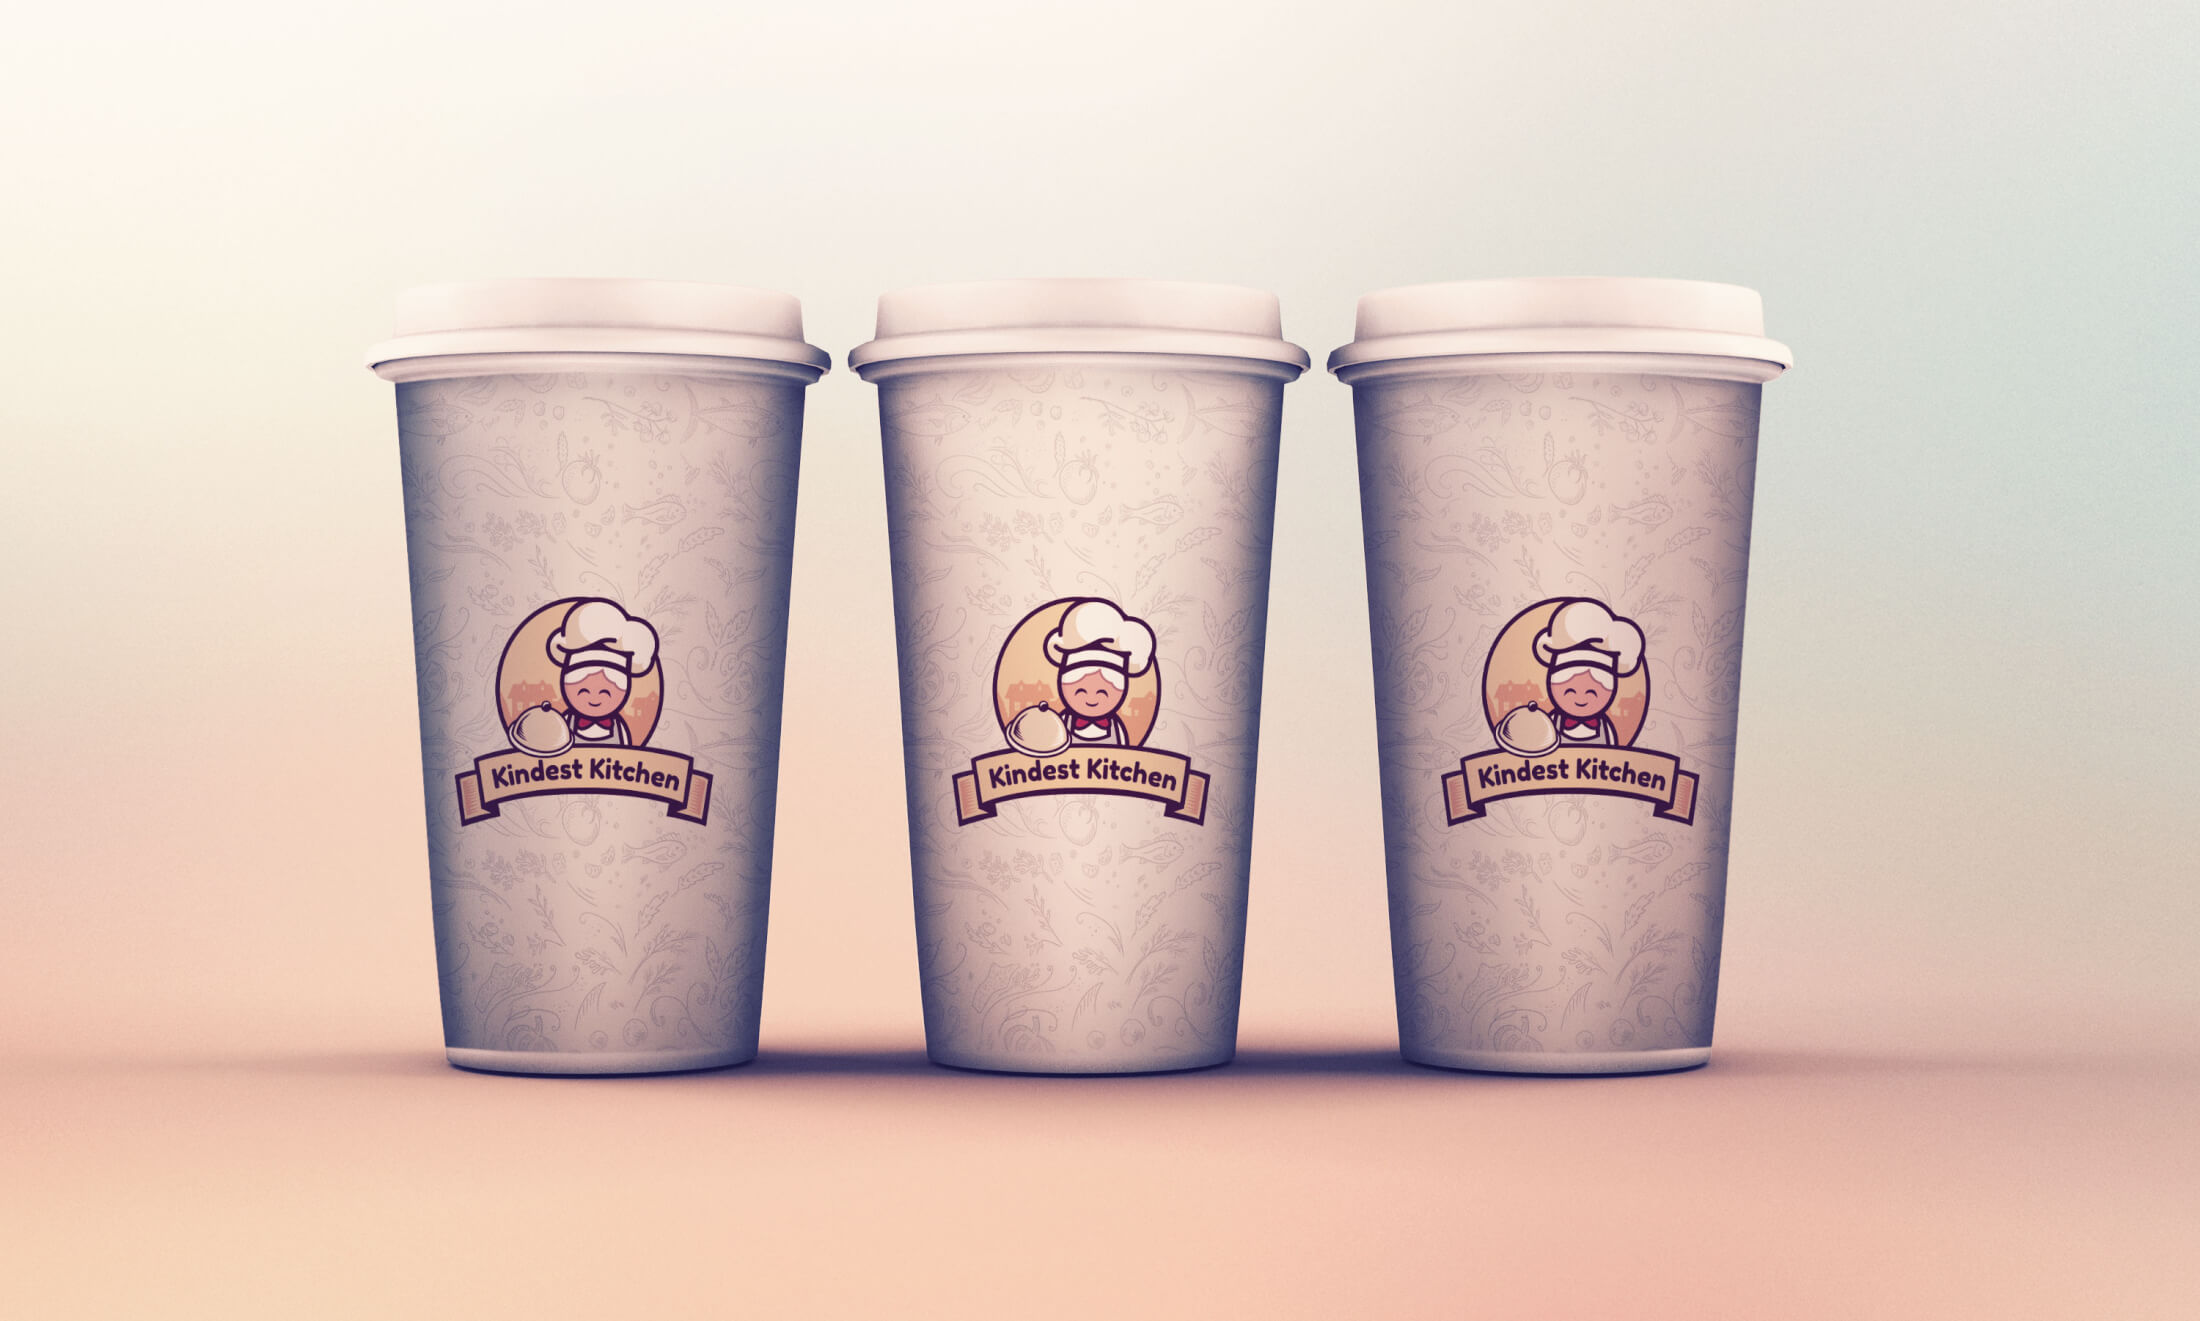 Restaurant logo design by europe graphics. Food company logo design. Coffe cups